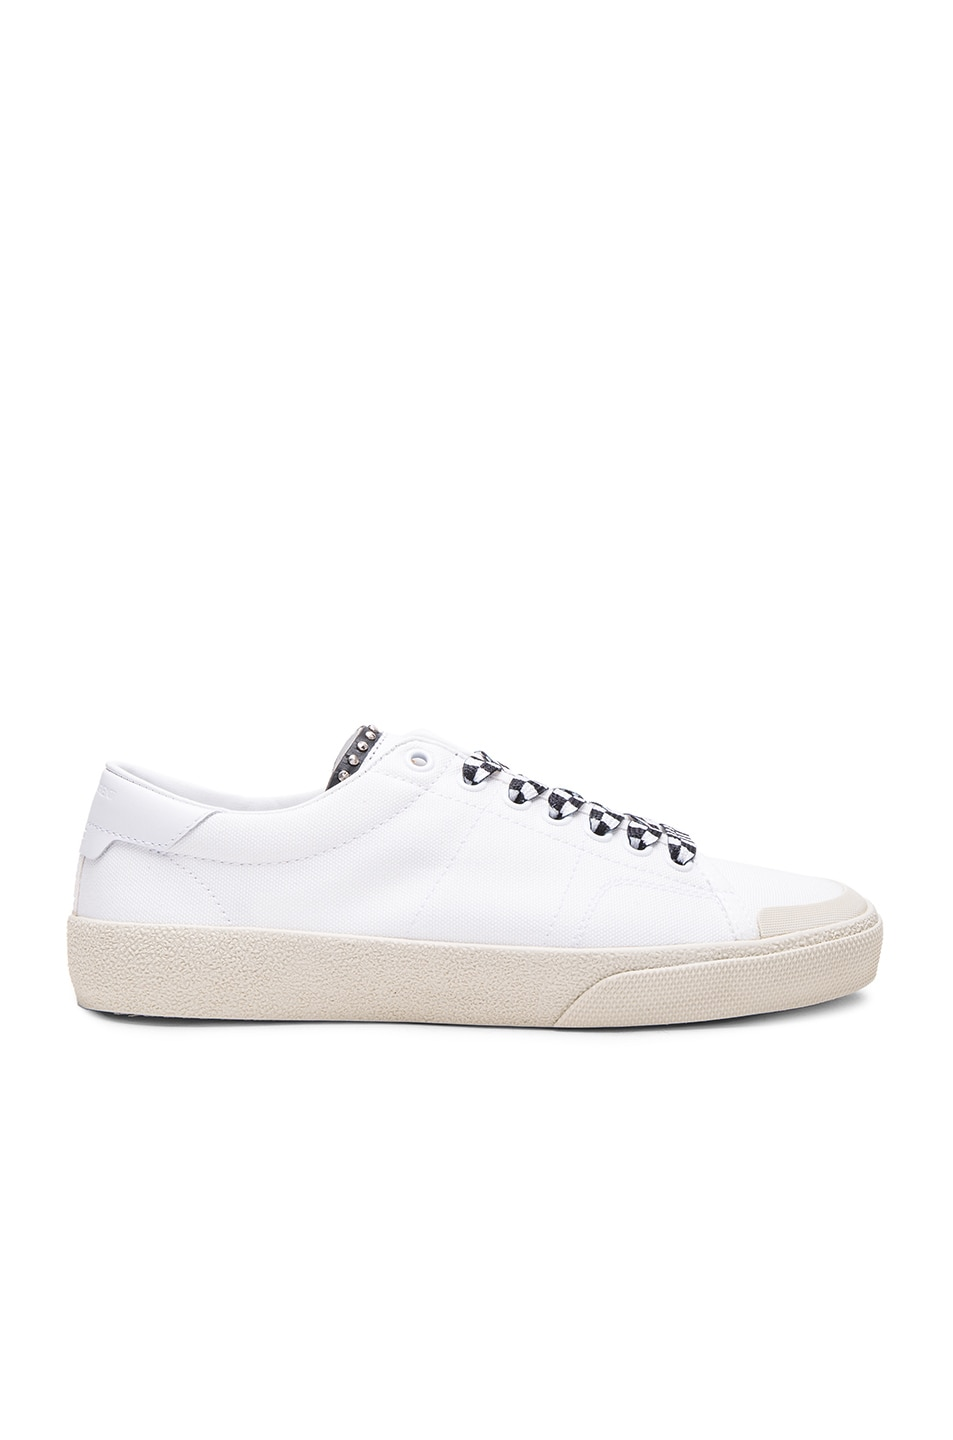 Image 1 of Saint Laurent Checkered Lace Leather Surf Sneakers in Off White